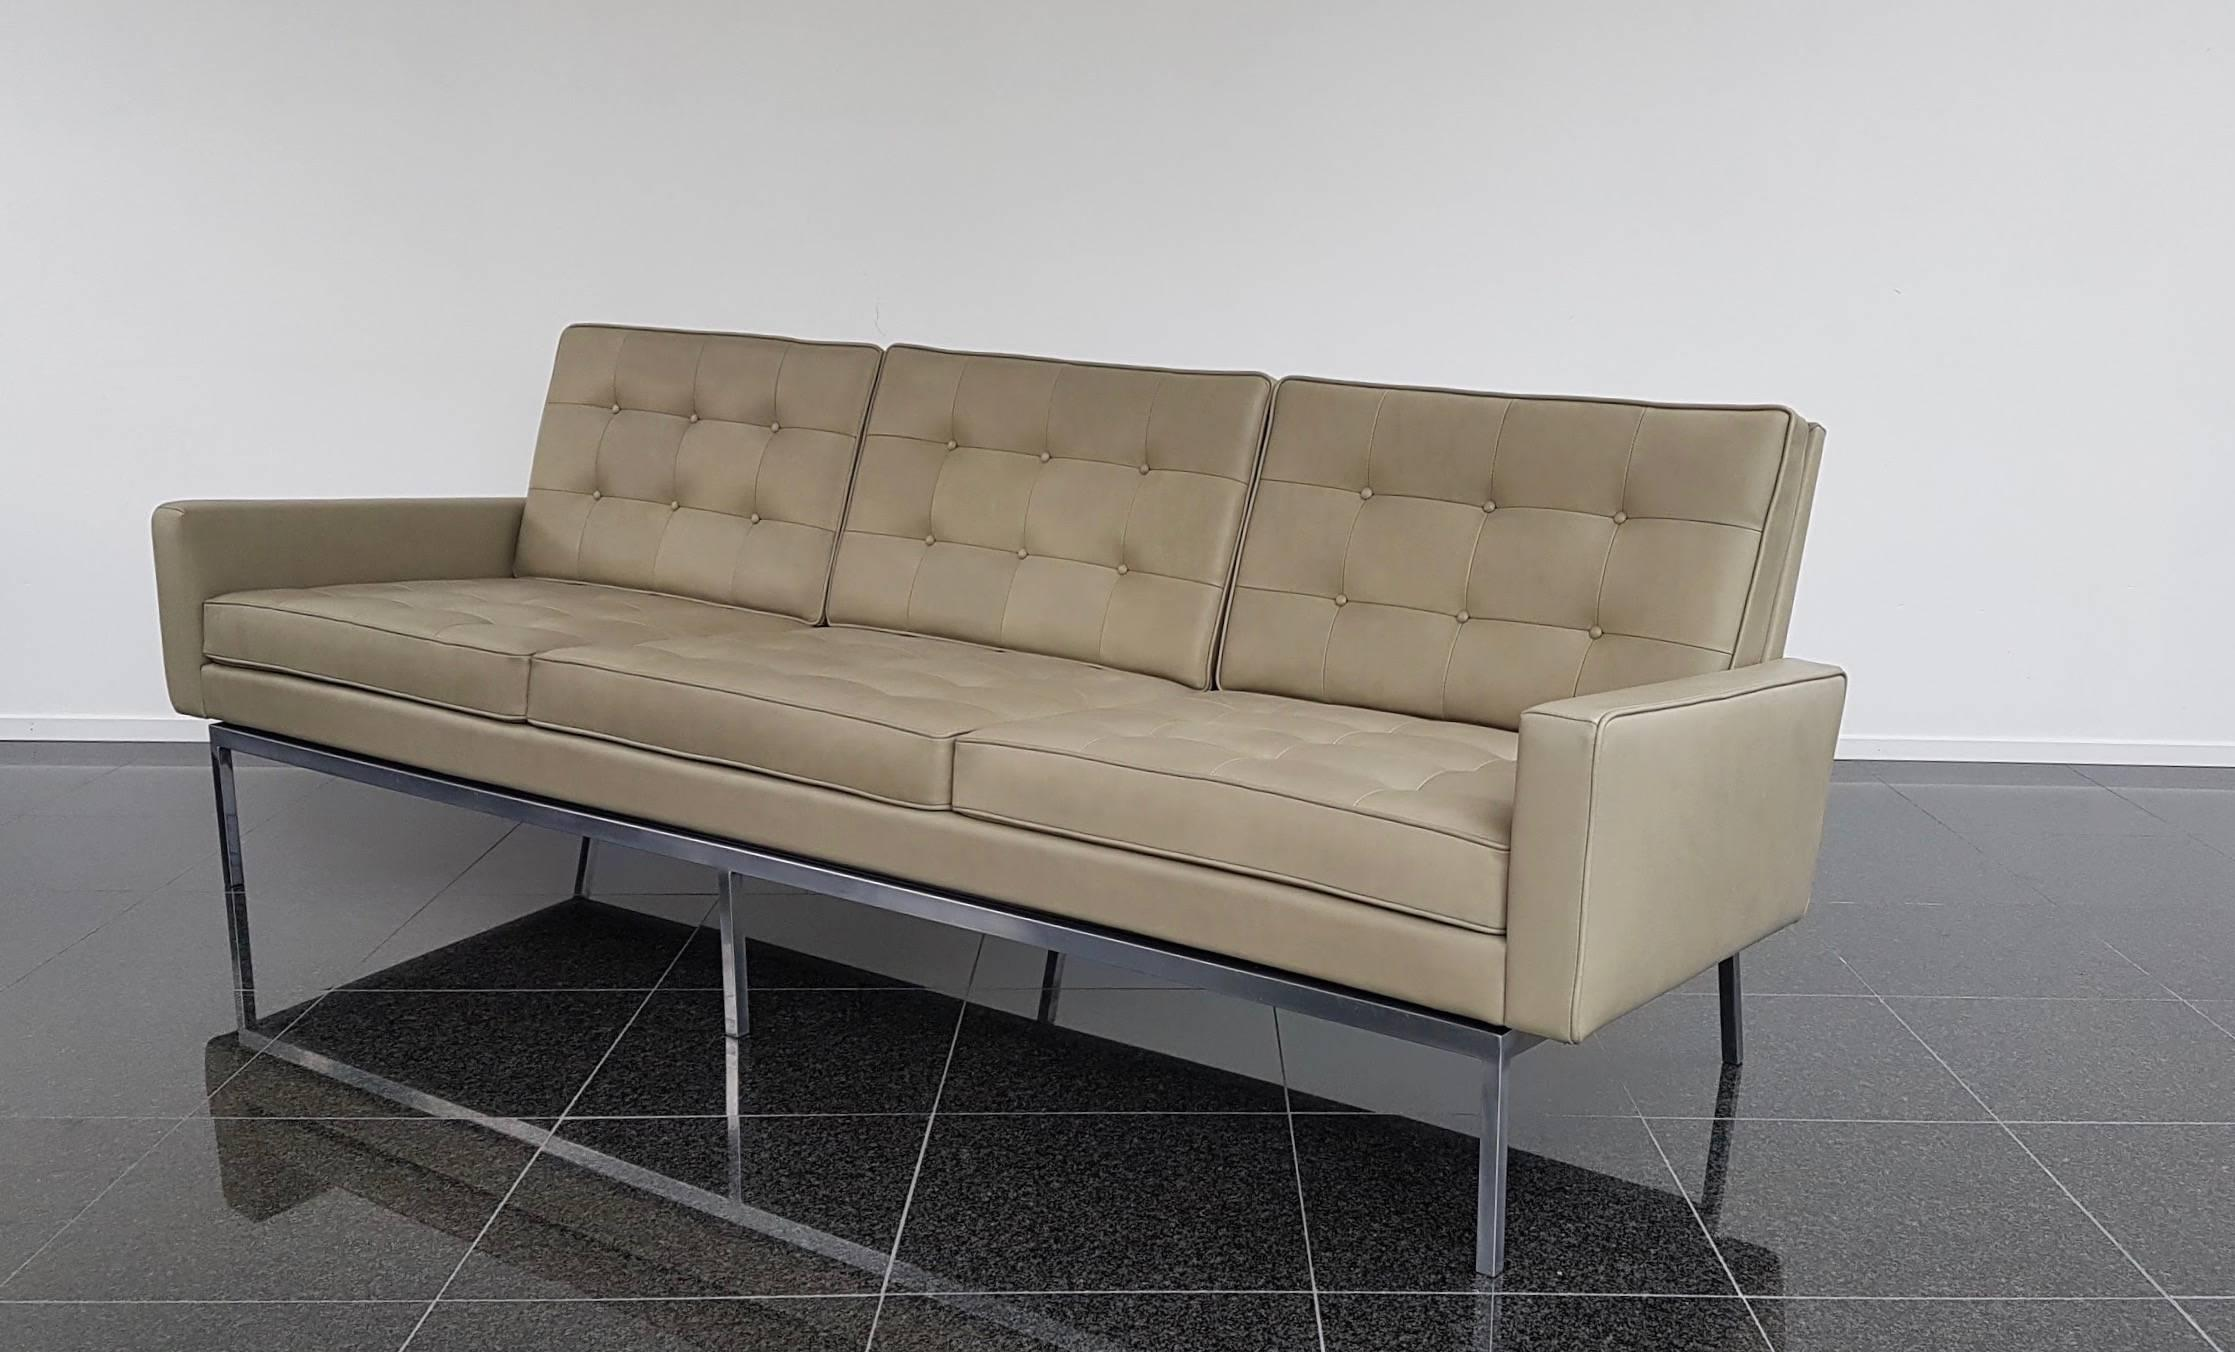 This Sofa Model 67A Was Designed In 1958 By American Designer Florence  Knoll And Has Been